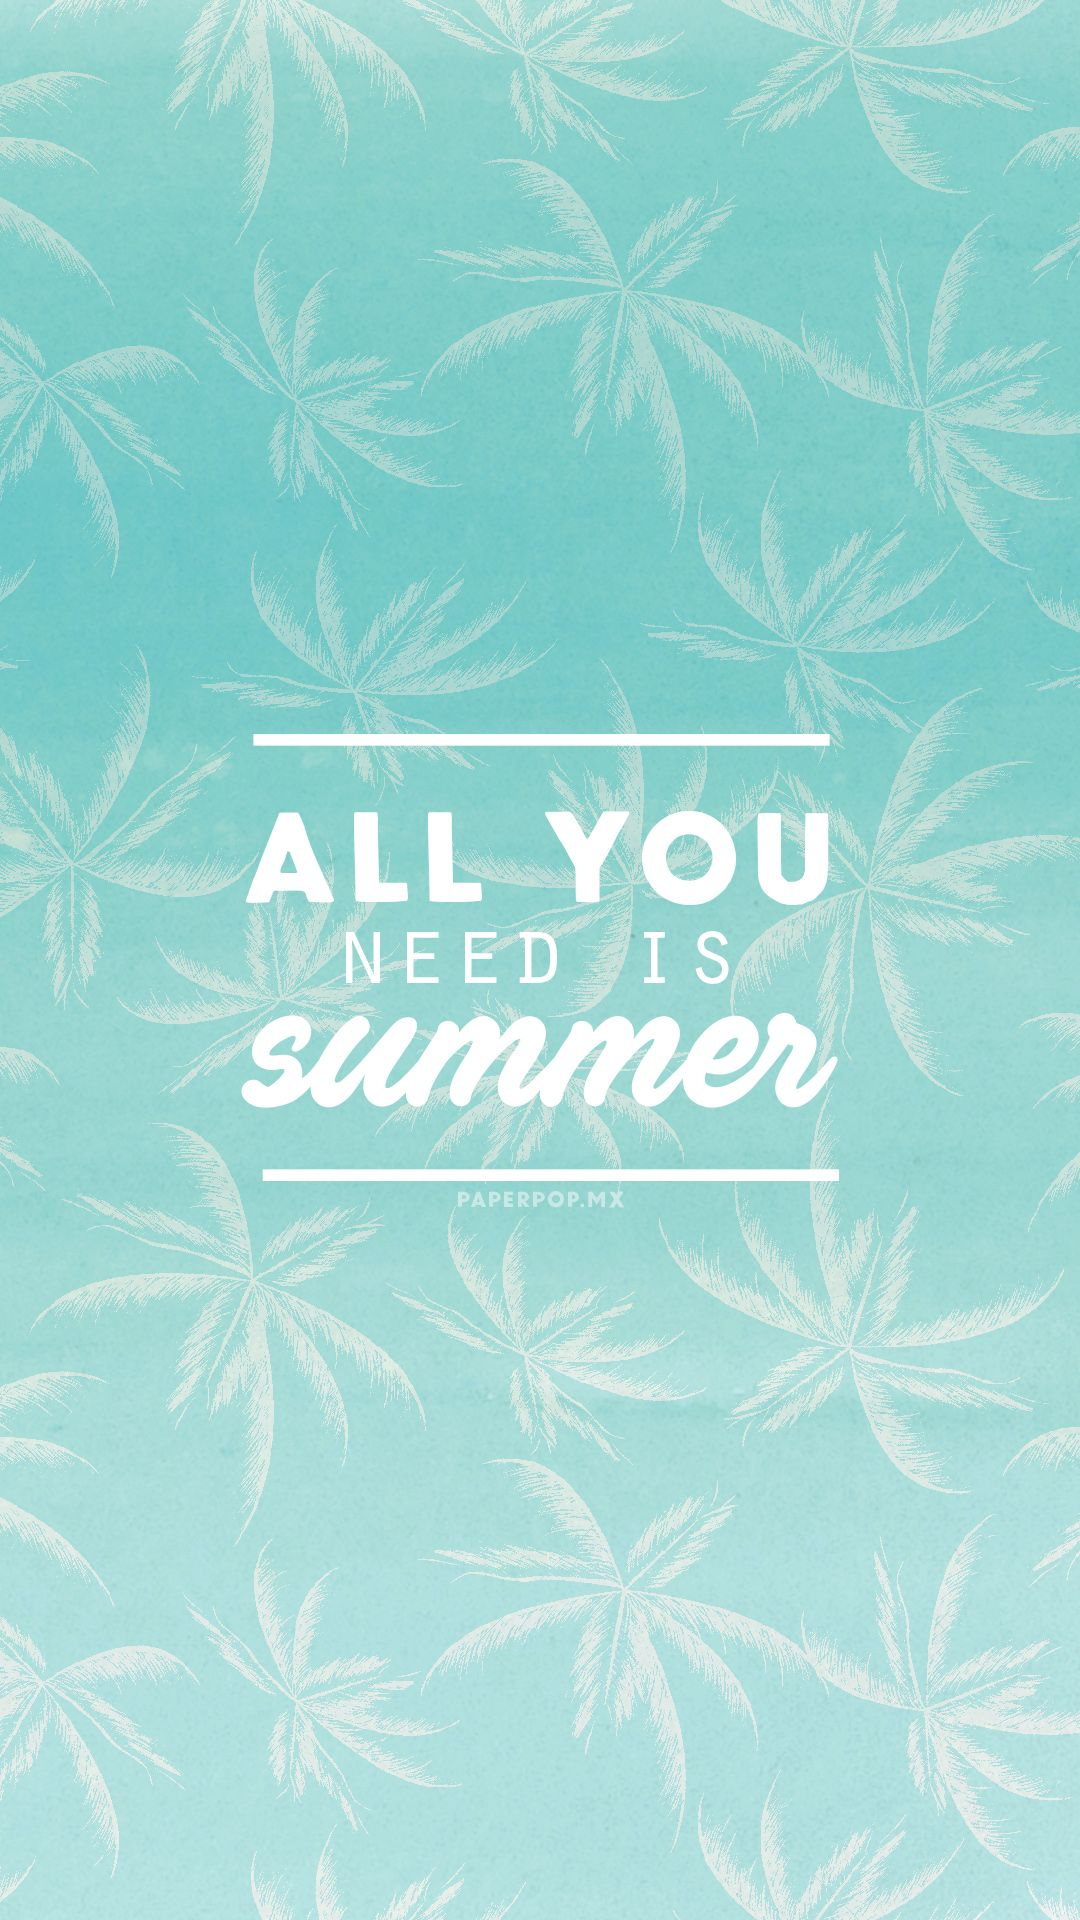 Tumblr iphone wallpaper summer - Summer Jpg Imagen Jpeg 1080 1920 P Xeles Escalado 34